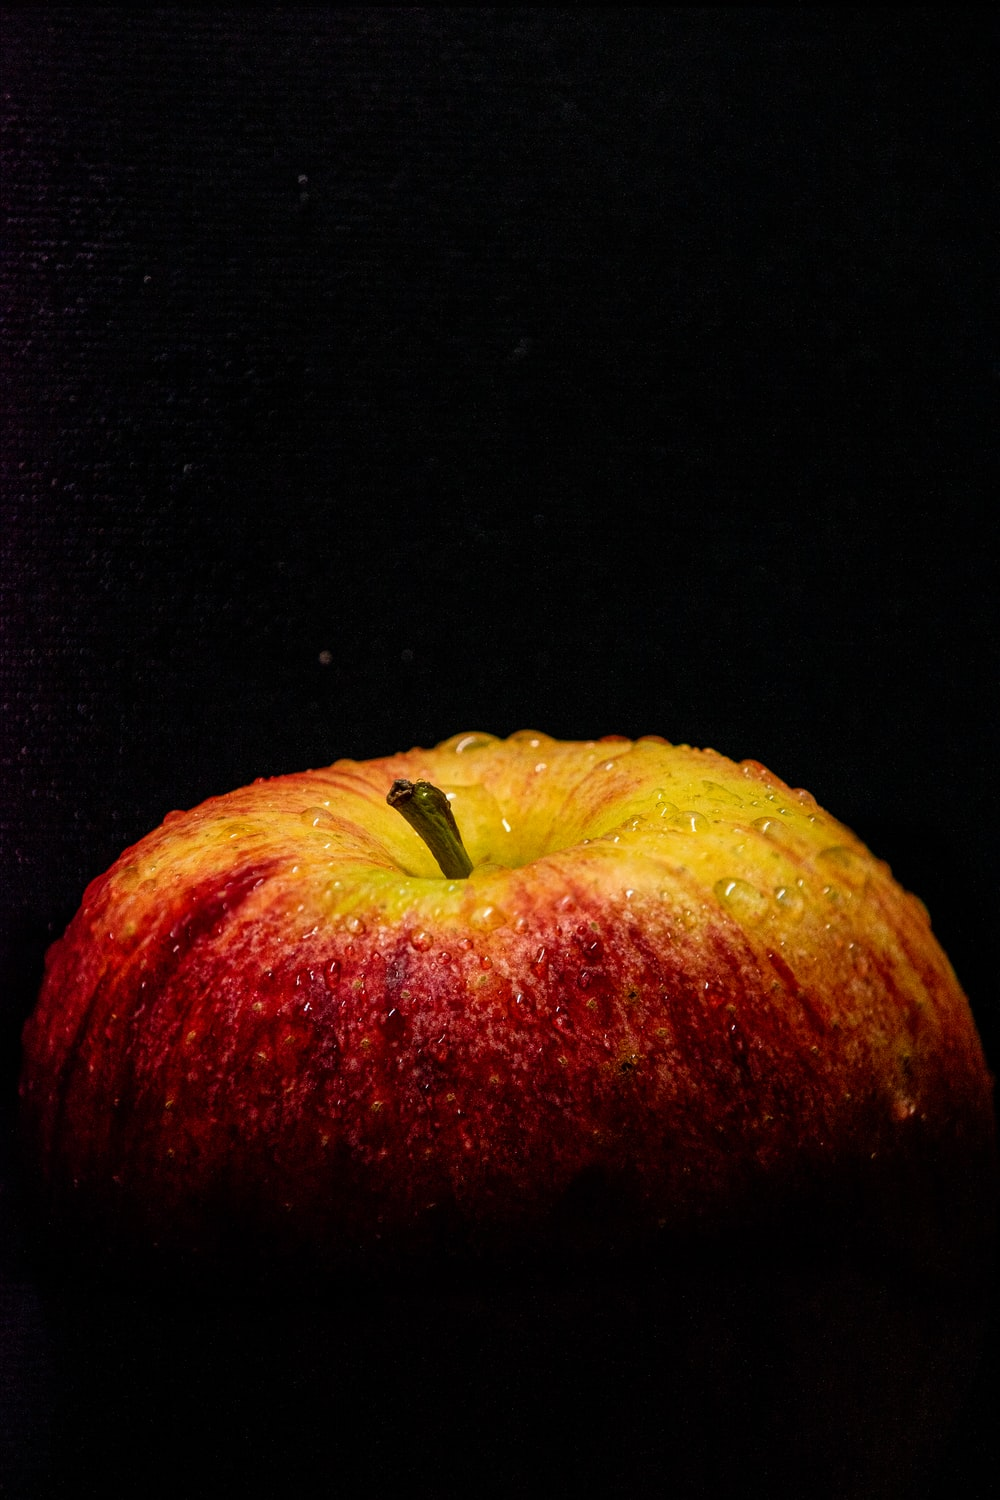 red and yellow apple fruit